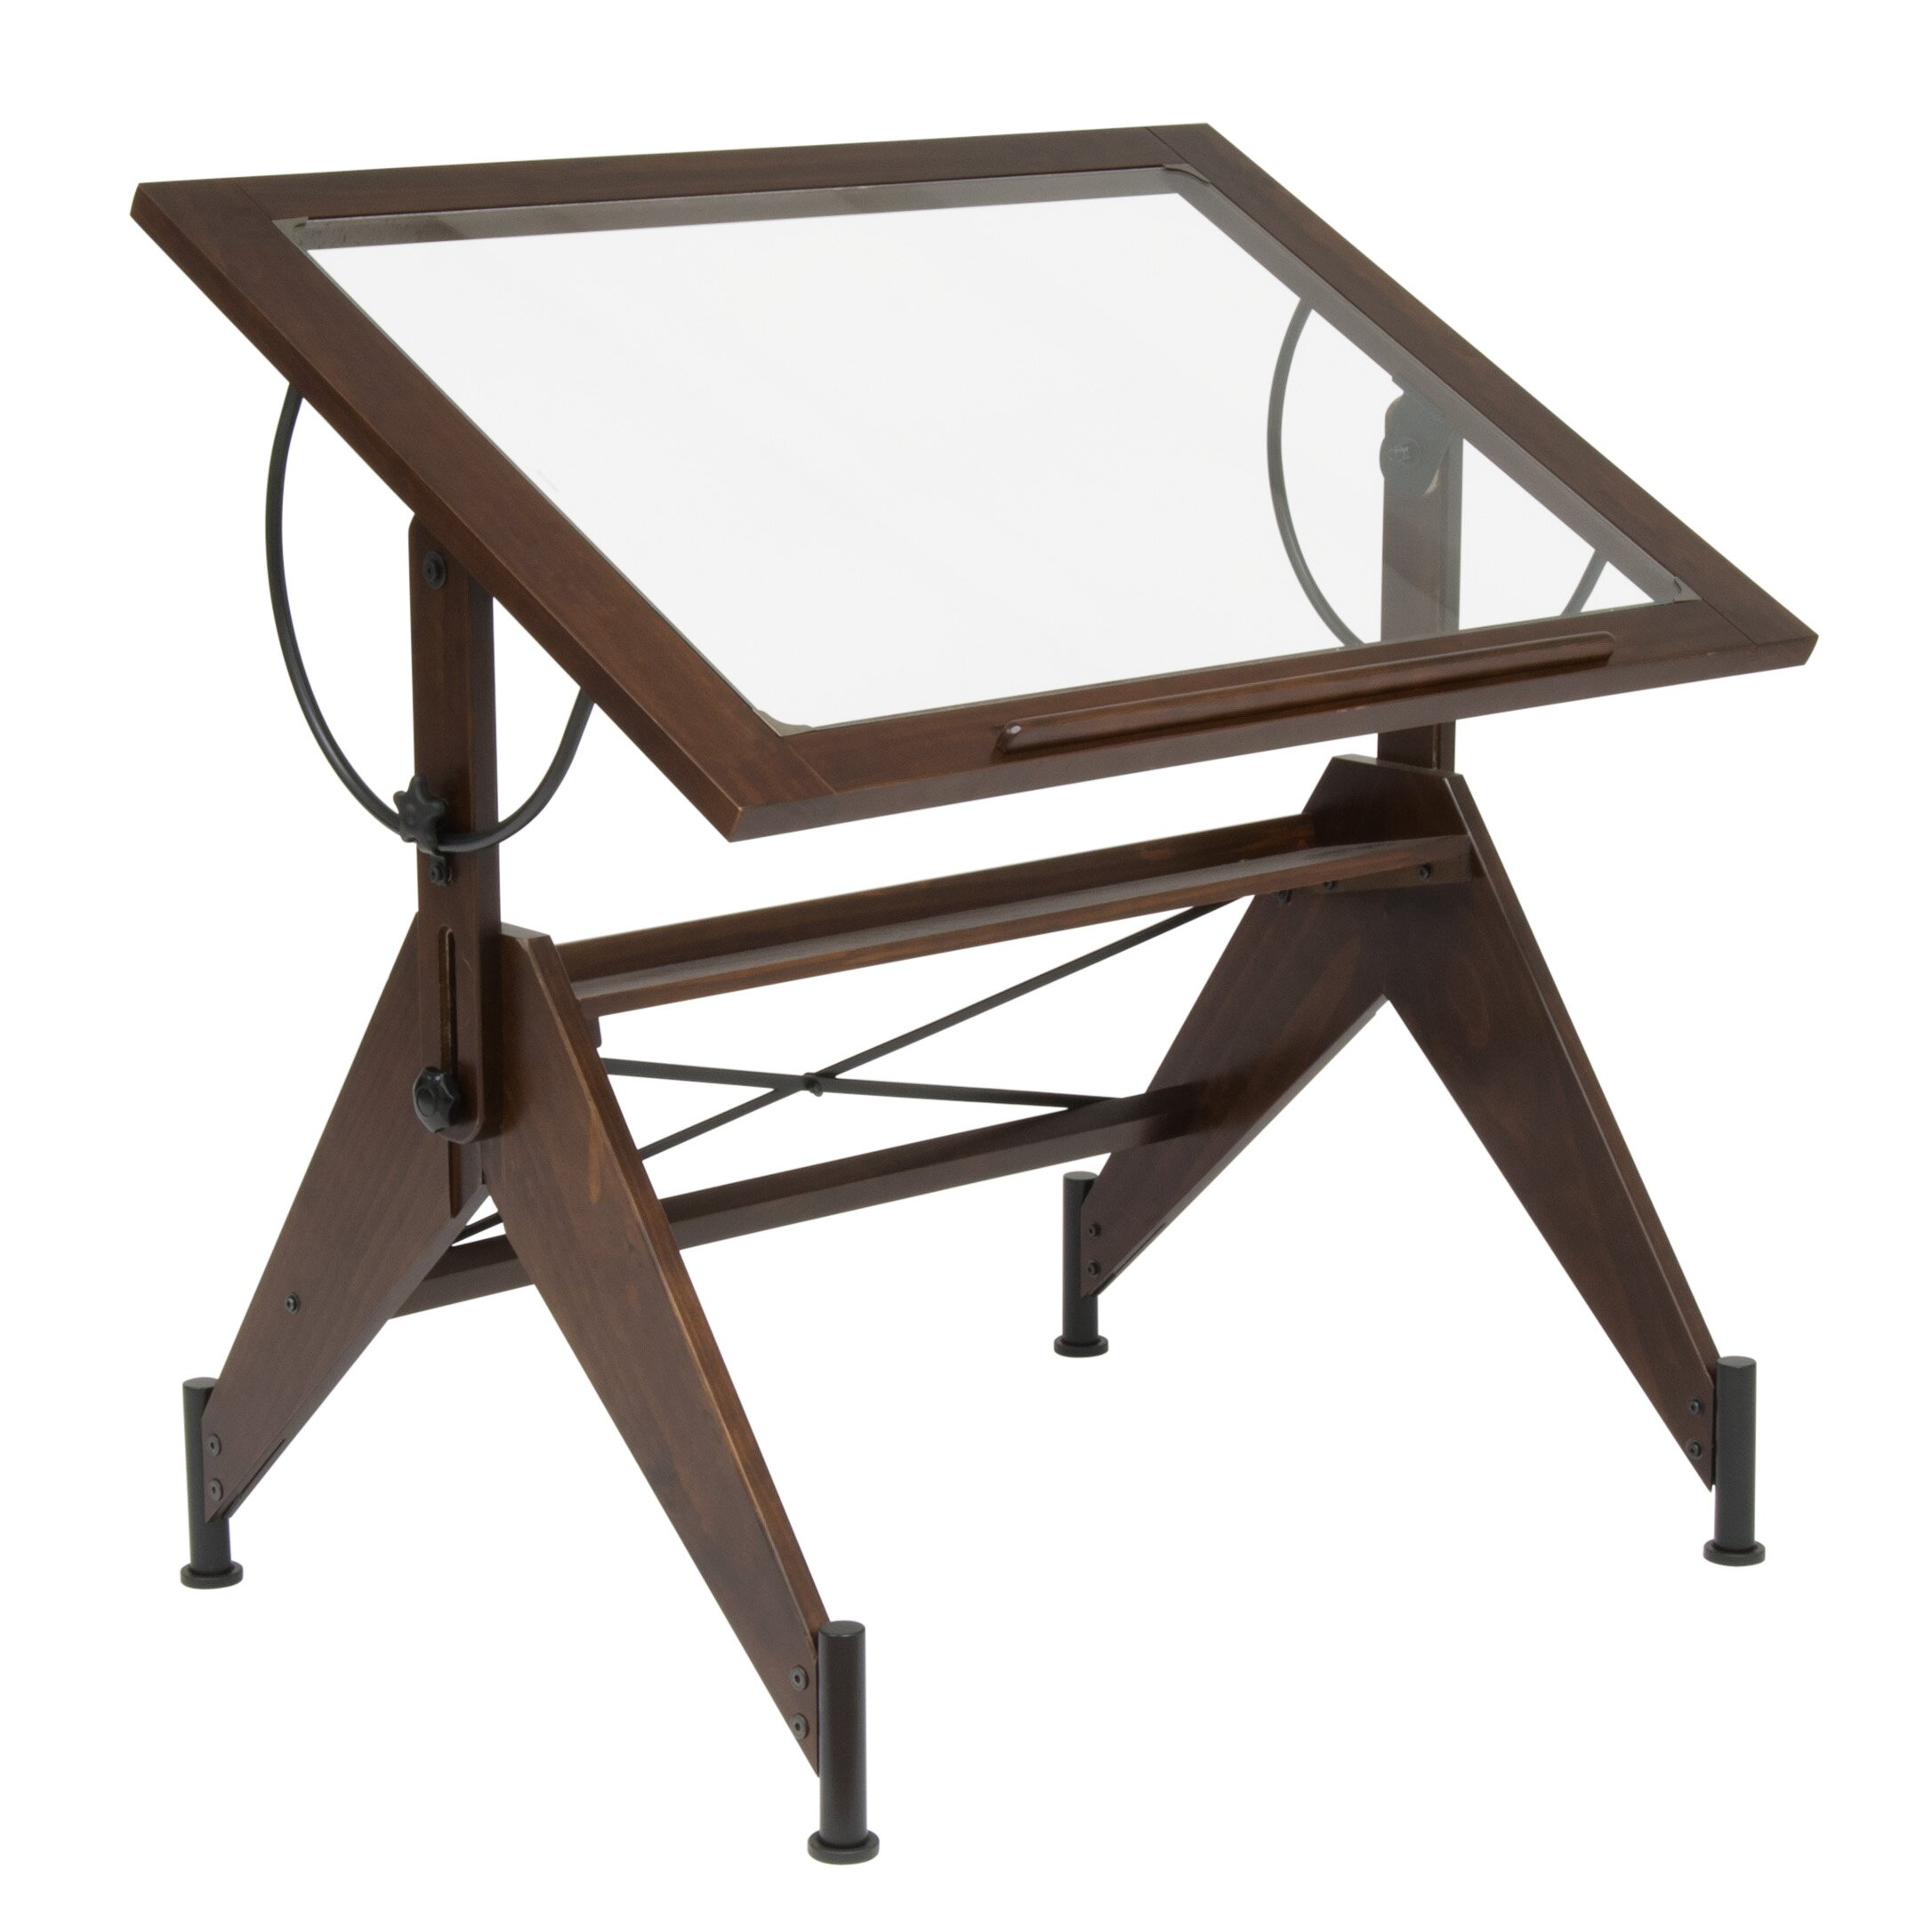 Drafting table dimensions - Studio Designs Aries Glass Drafting Table